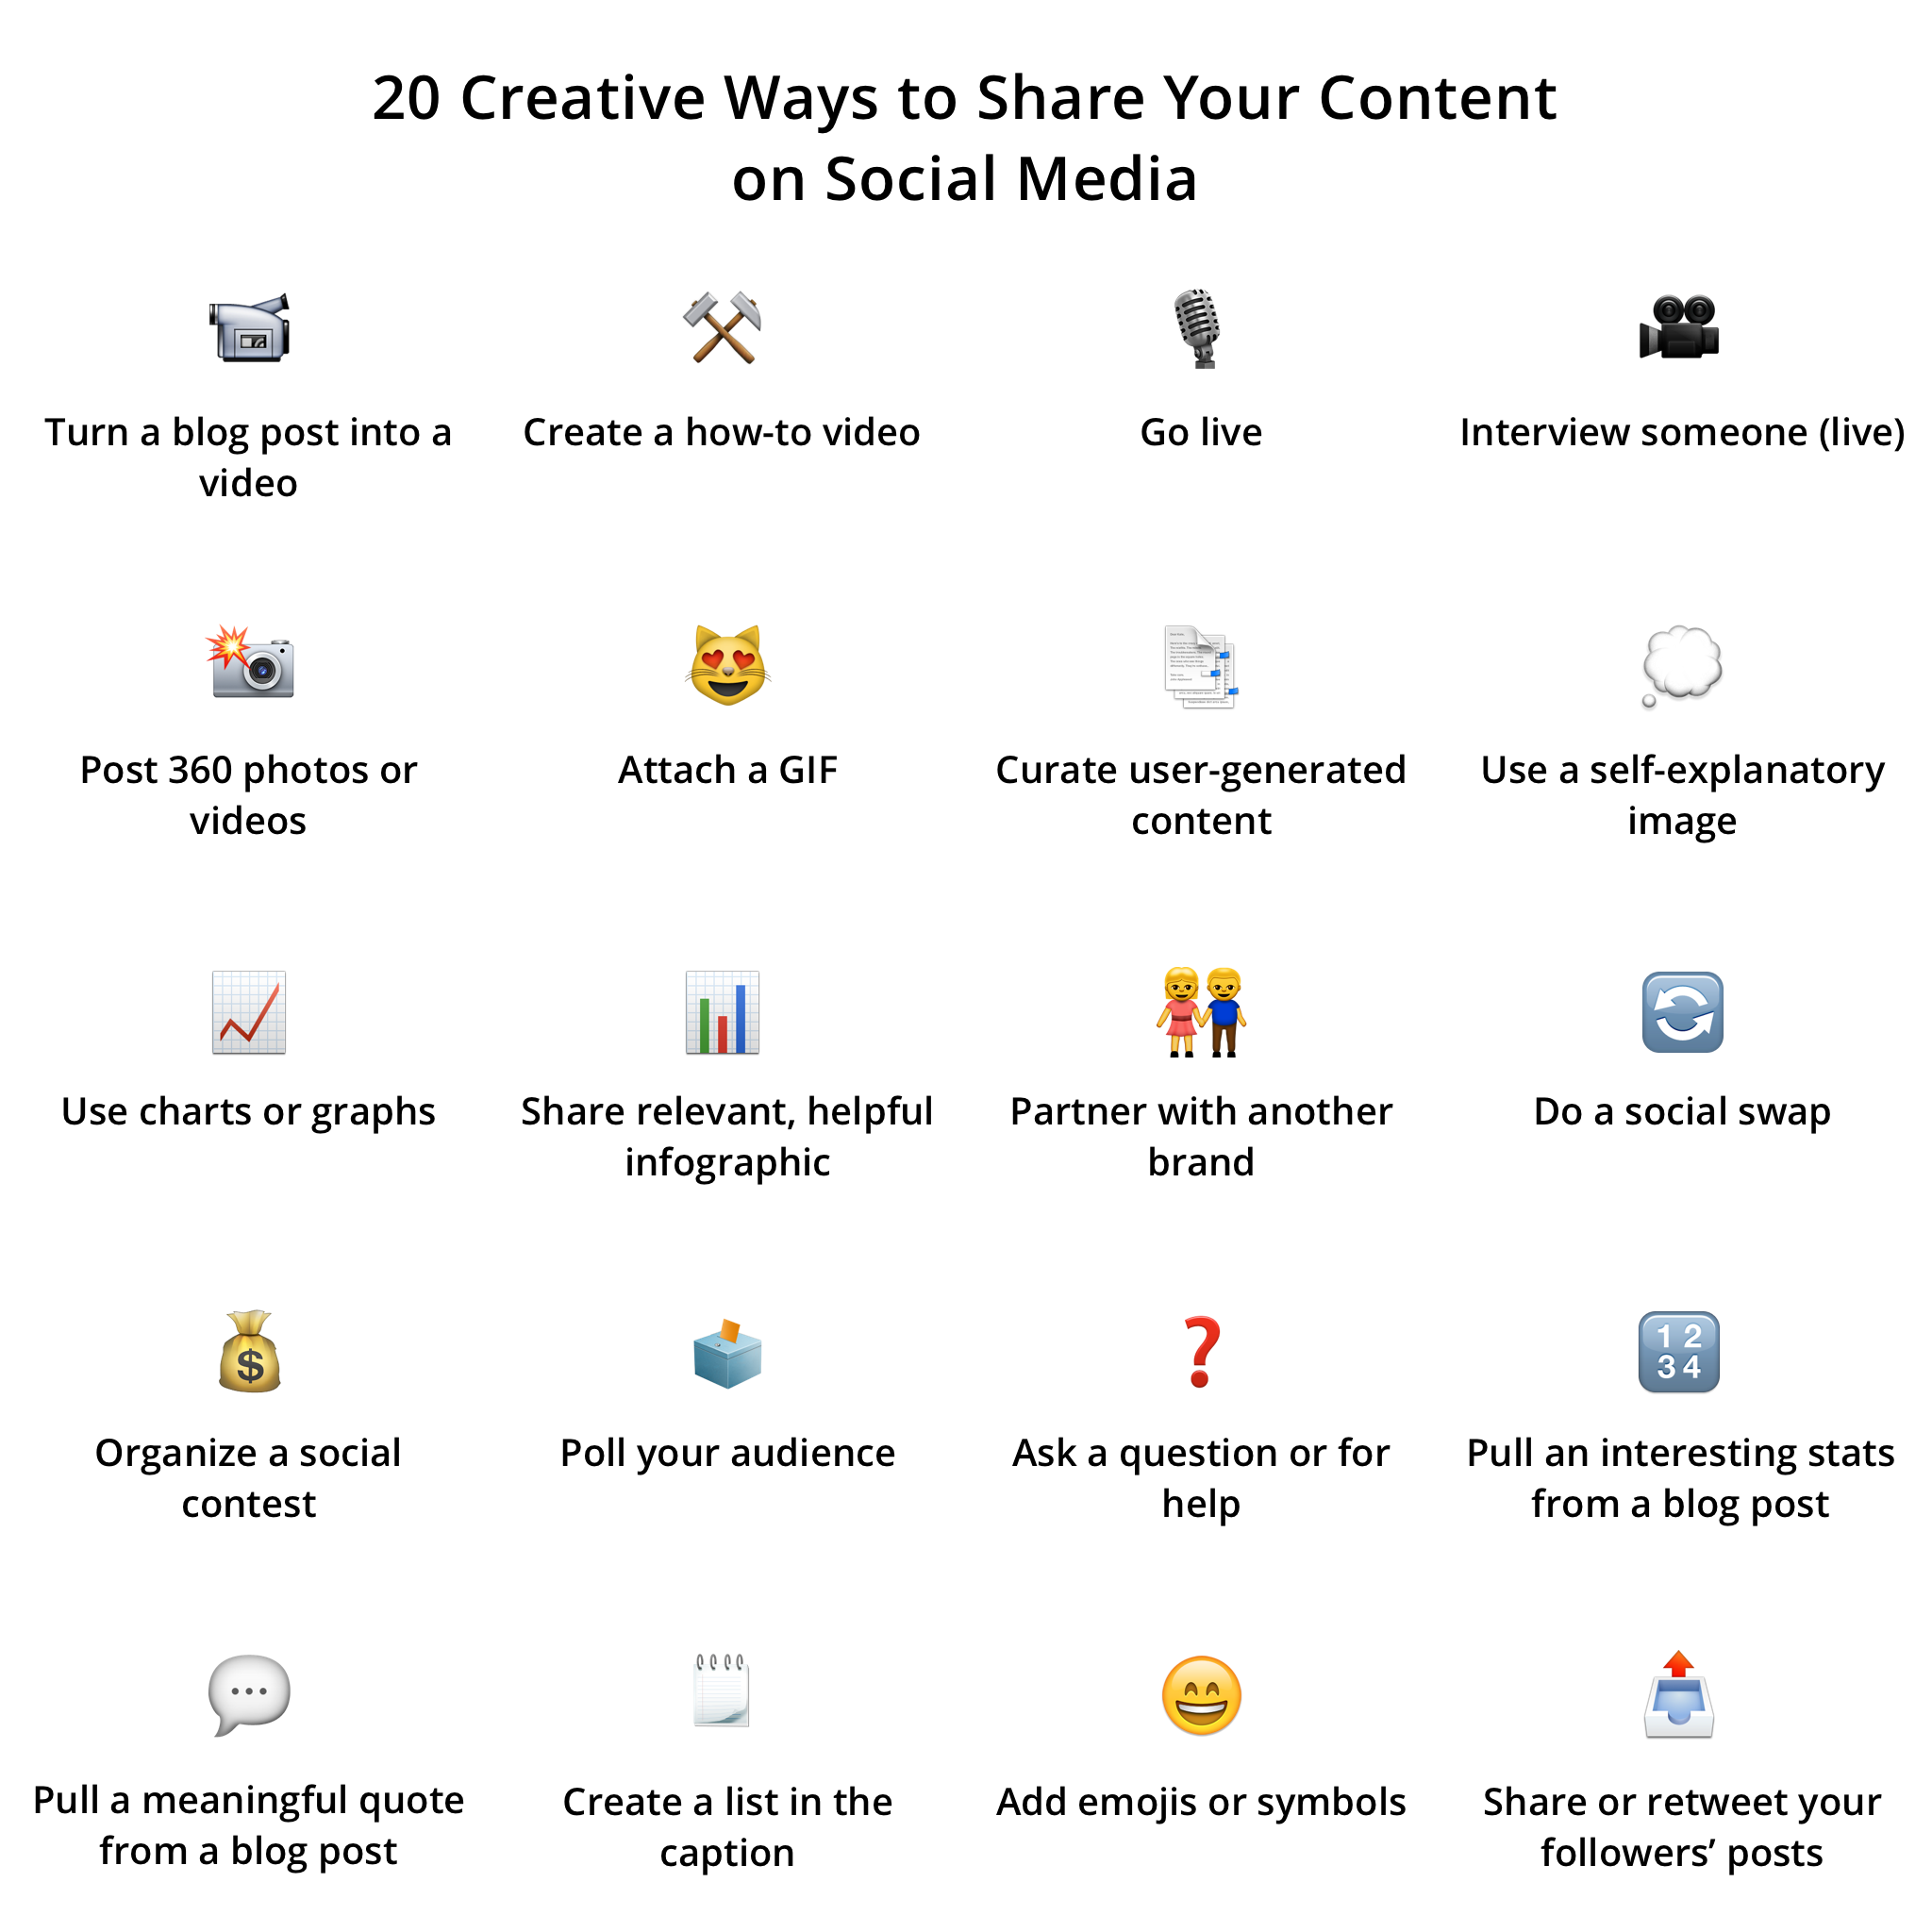 social-media-content-ideas-infographic-bw.png